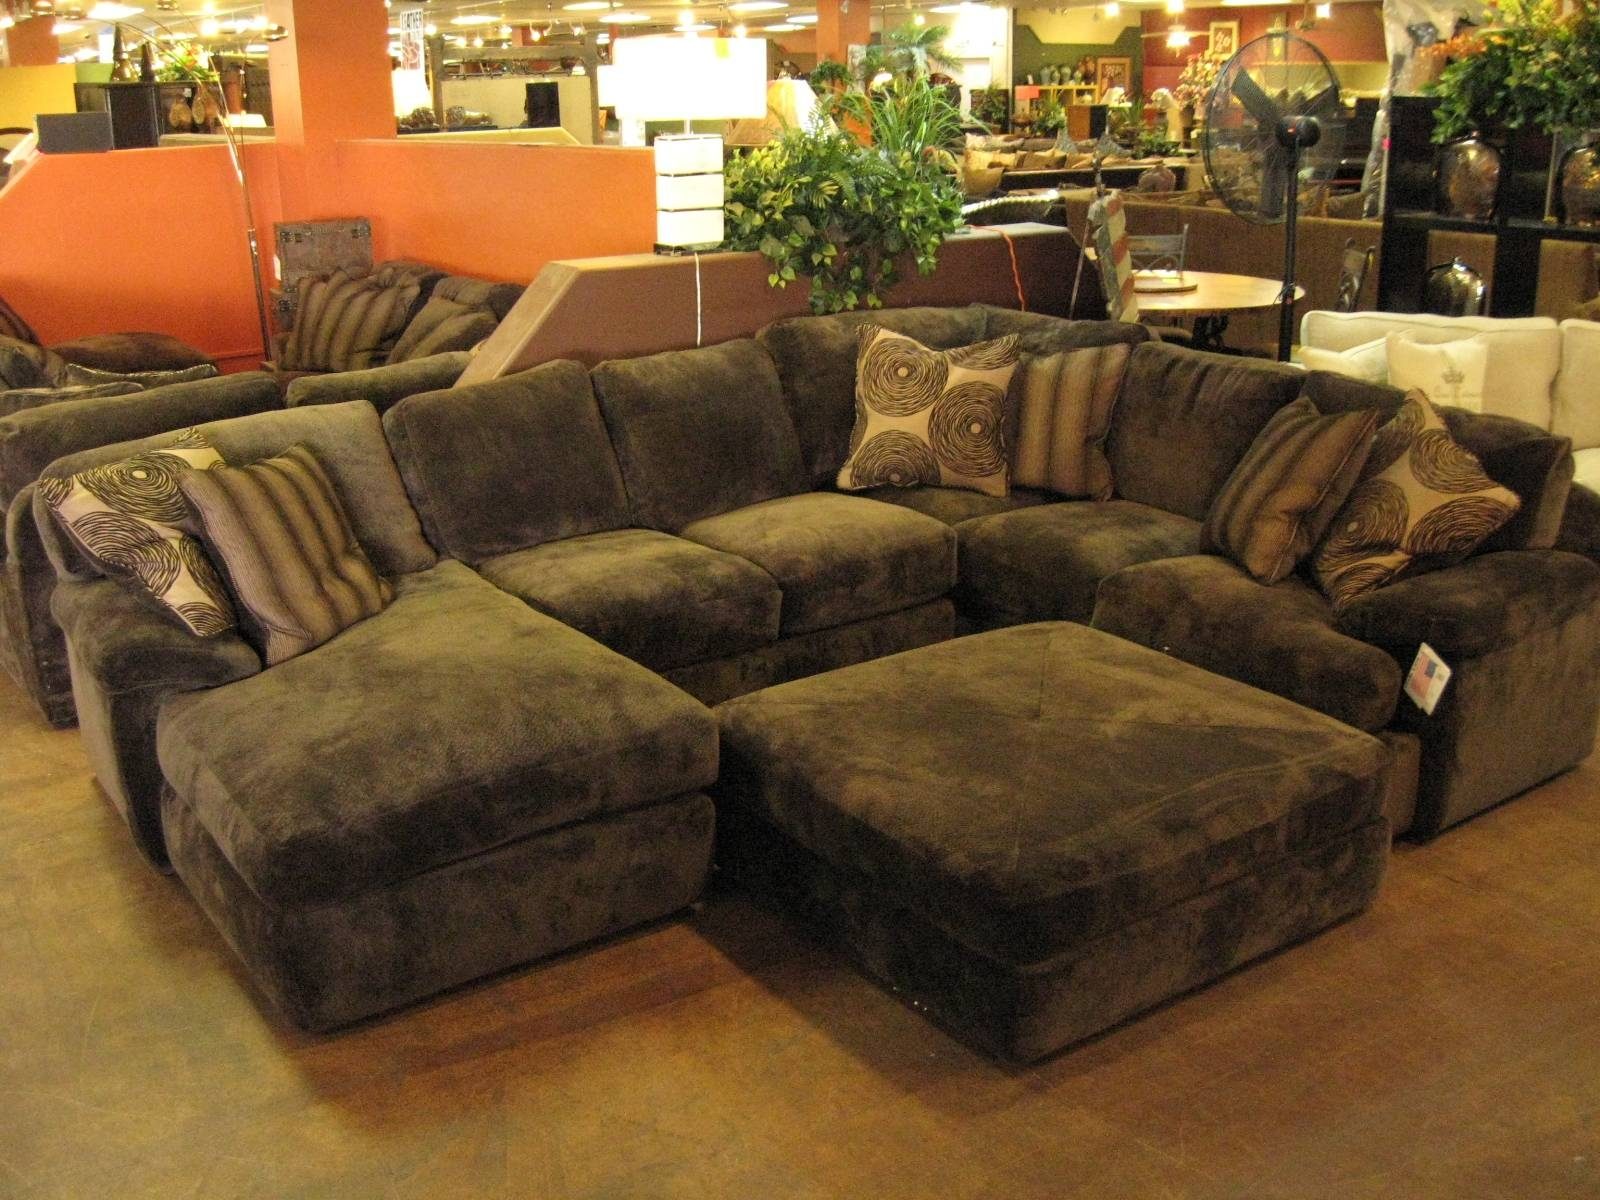 Furniture: Comfortable Wrap Around Couch With Ikea Ottoman For in Comfortable Sectional Sofa (Image 15 of 30)